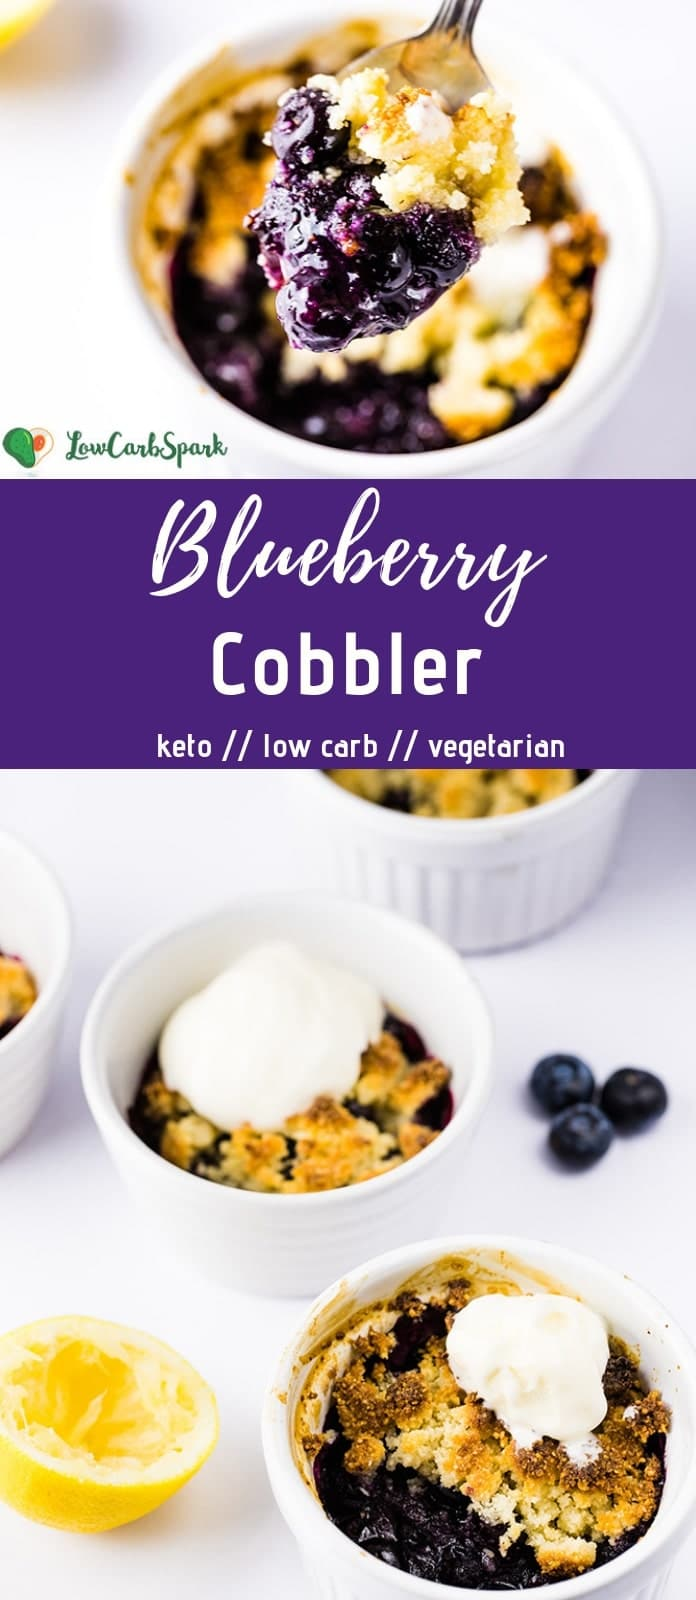 This Keto Blueberry Cobbler is a quick and easy keto dessert that\'s very versatile and low in carbs.  The blueberry filling is thick and bubbly with a golden almond flour topping perfect for a scoop of sugar-free ice cream or whipped cream. Recipe via @lowcarbspark | www.lowcarbspark.com